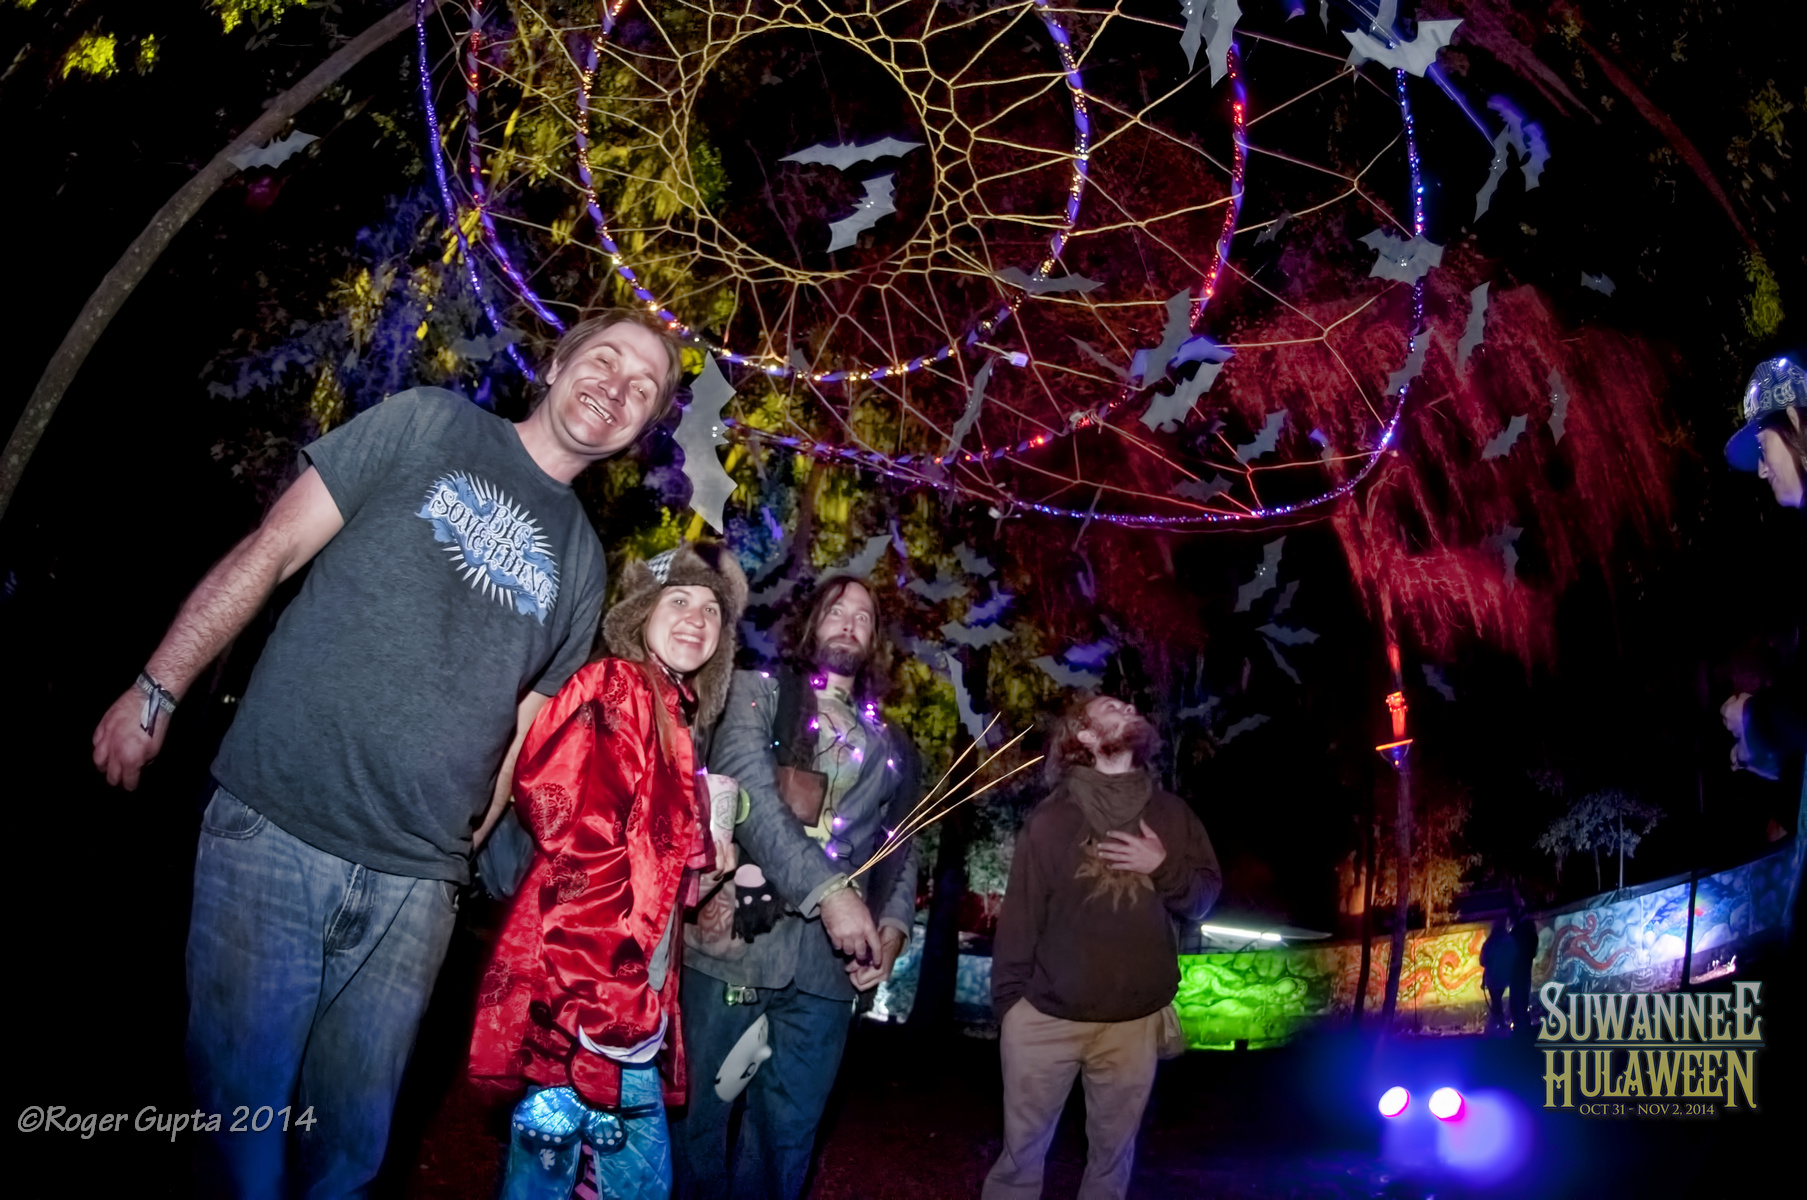 Suwannee Hulaween 2014 Review & Photos